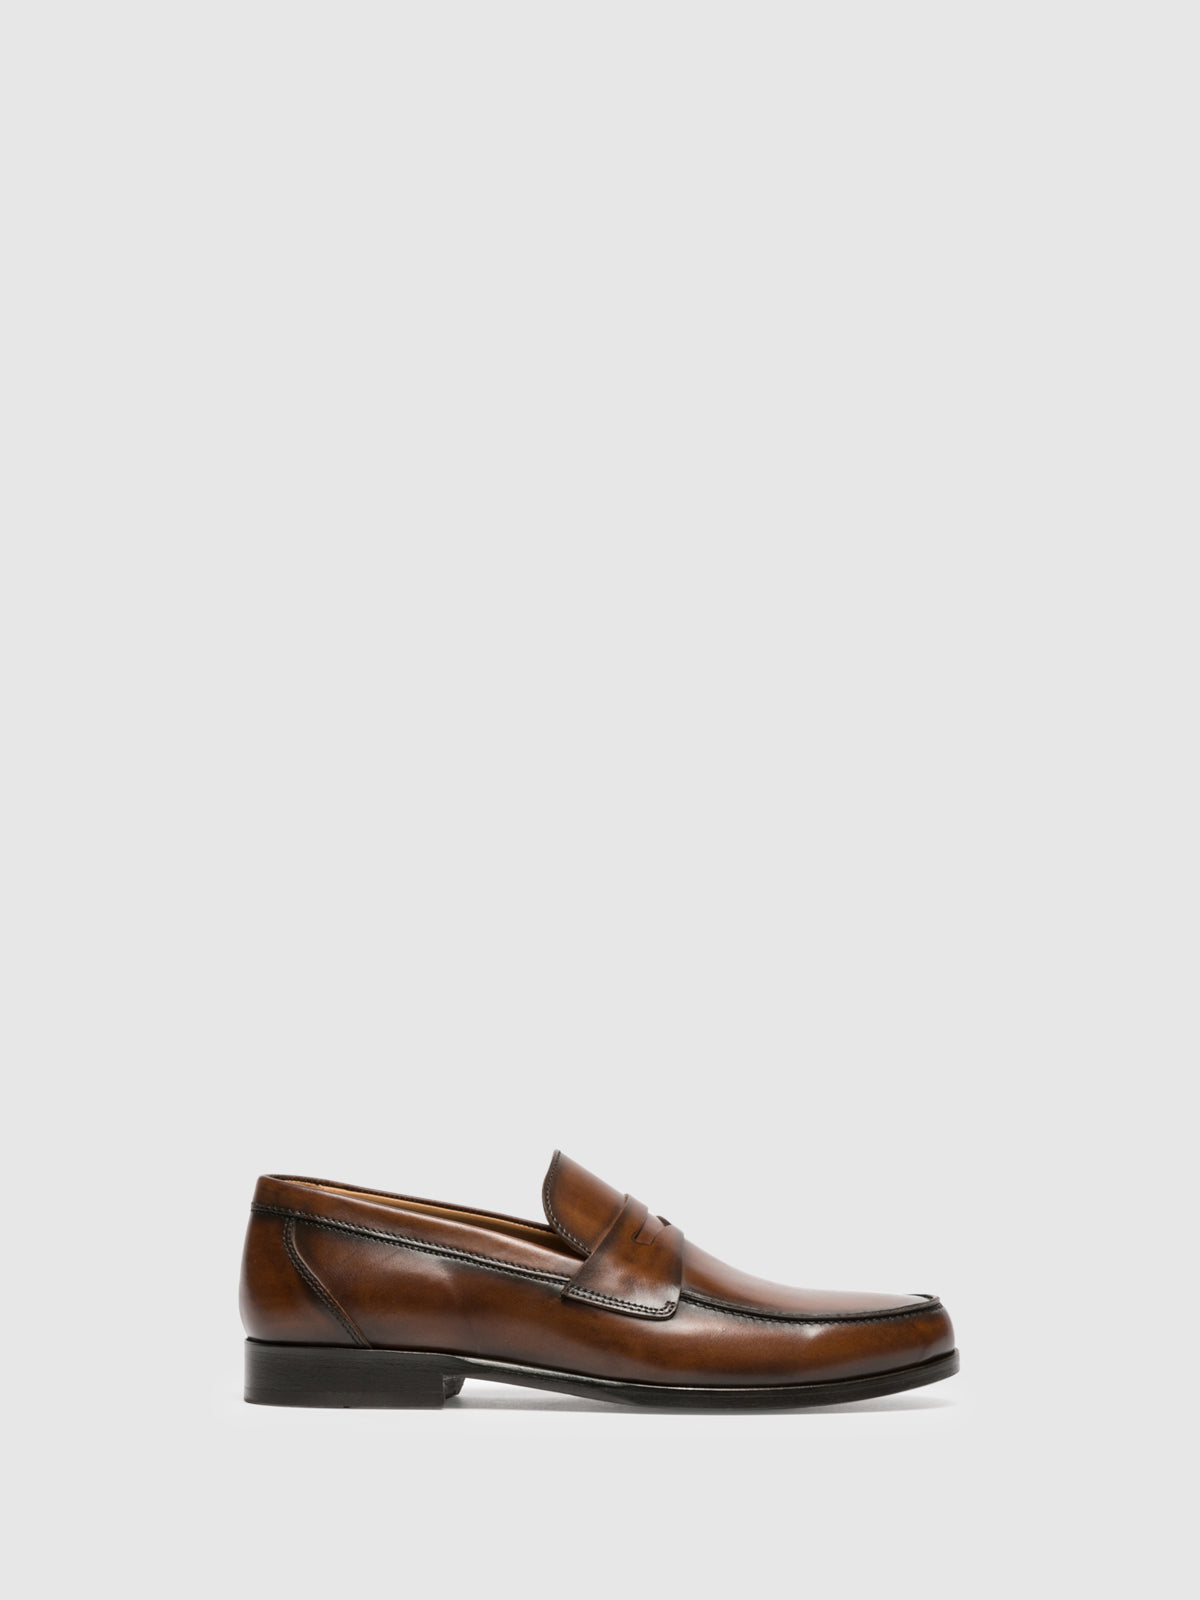 Yucca Loafers in Camel